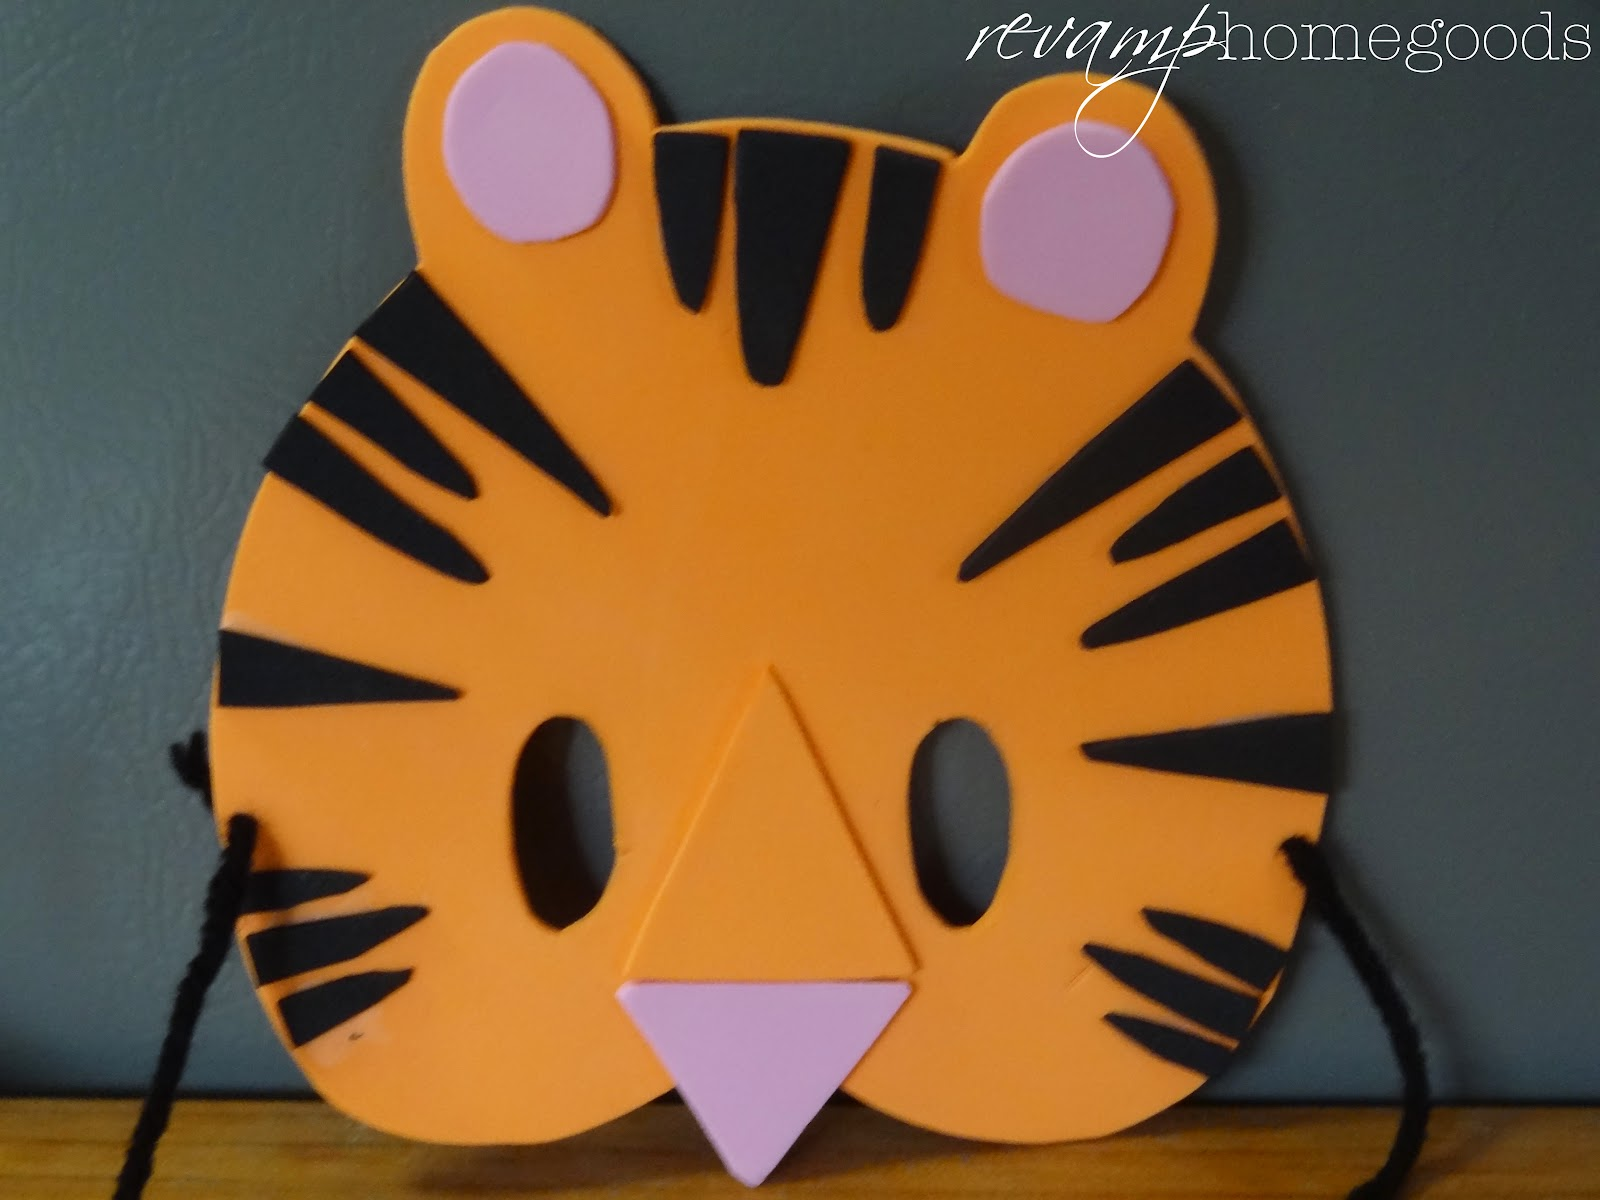 Kids Crafts DIY Foam Animal Masks & Kids Crafts: DIY Foam Animal Masks | Revamp Homegoods